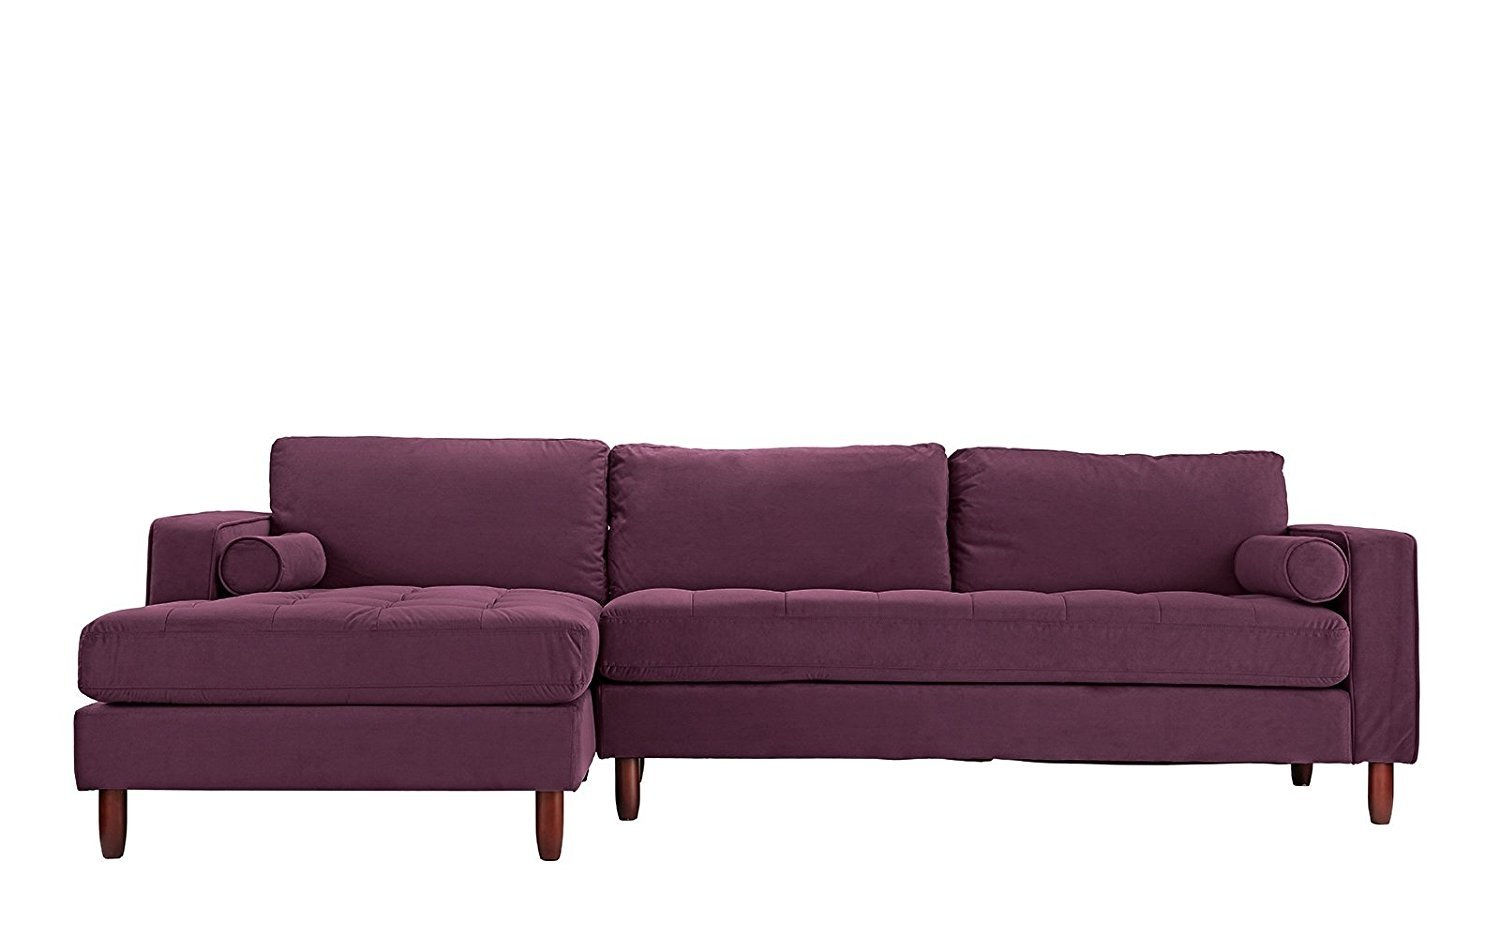 Peachy Details About Tufted Velvet Fabric Sectional Sofa L Shape Couch Left Facing Chaise Purple Ncnpc Chair Design For Home Ncnpcorg